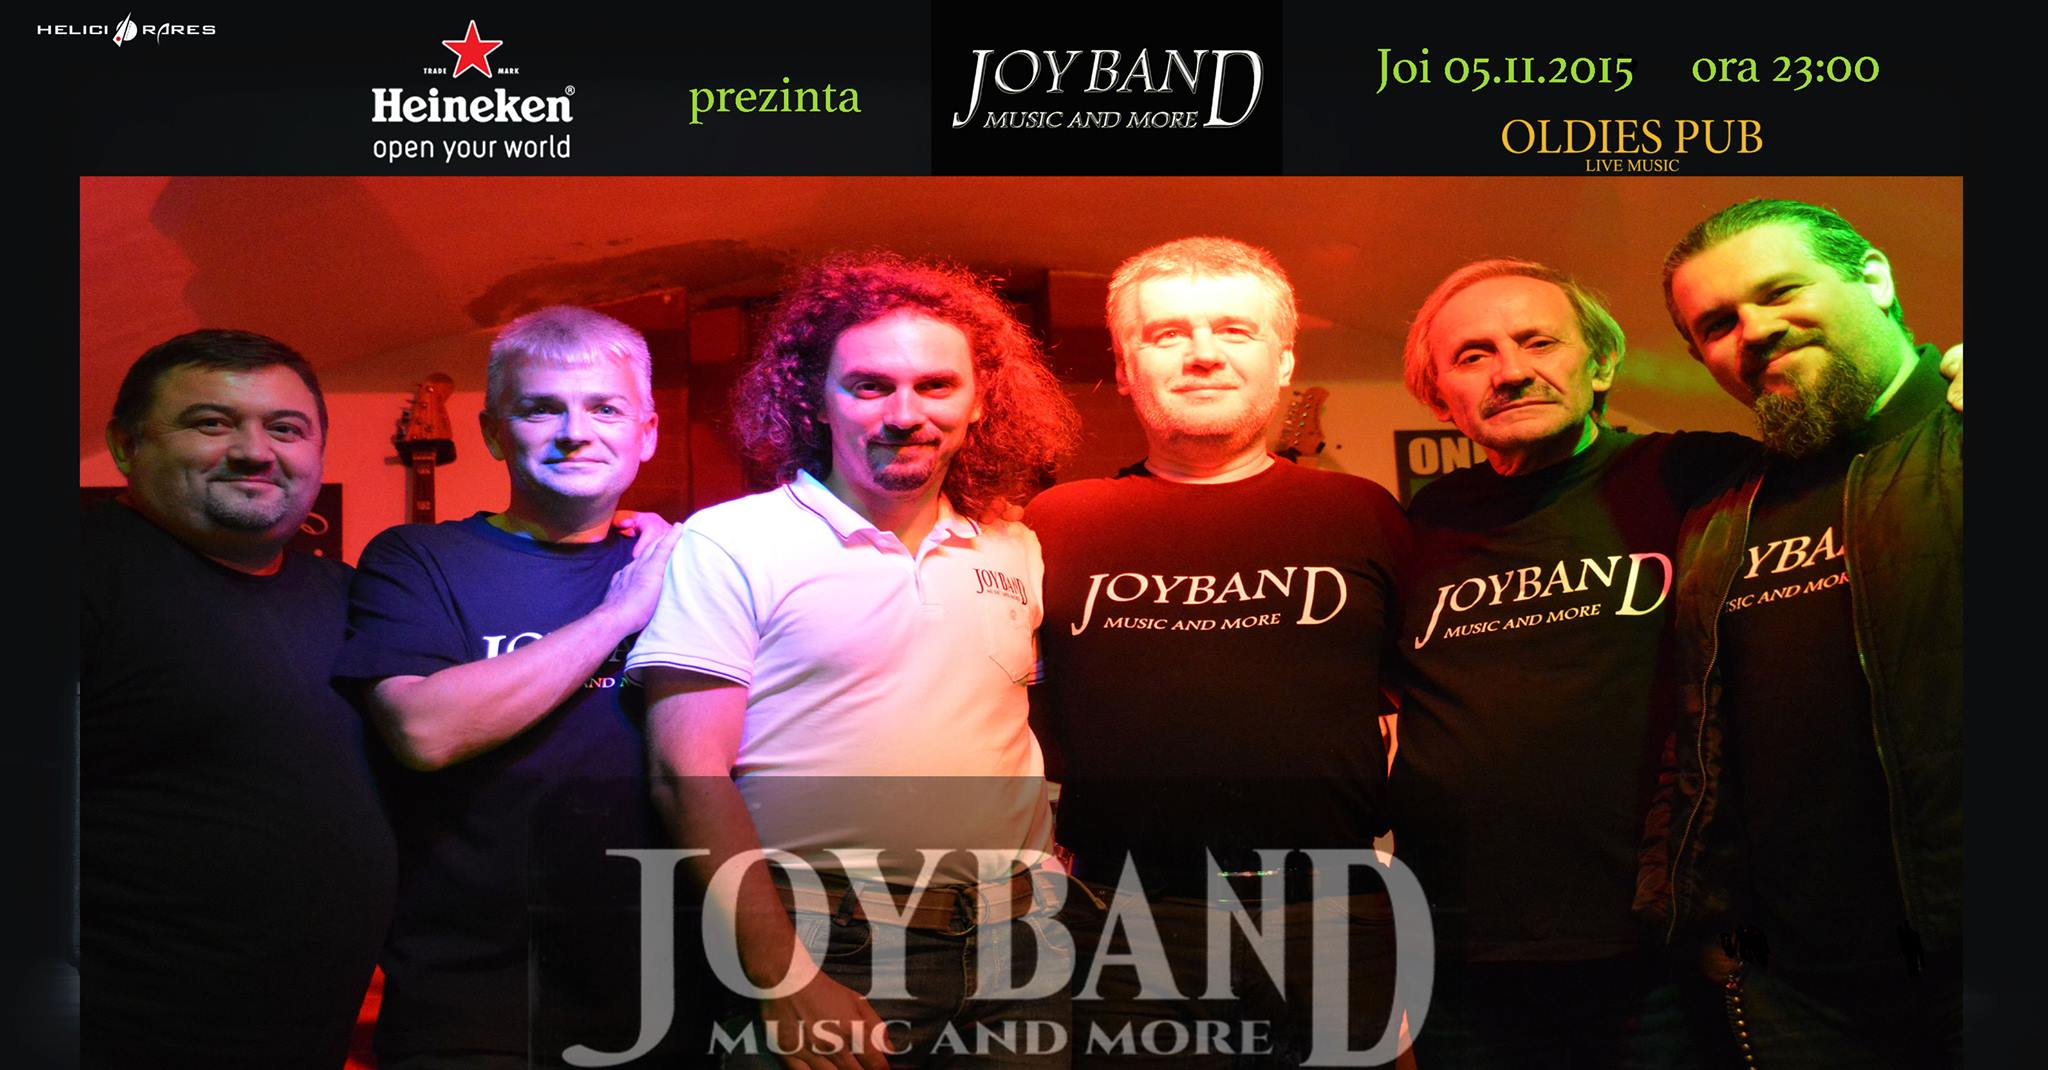 JOY BAND live in Oldies Pub